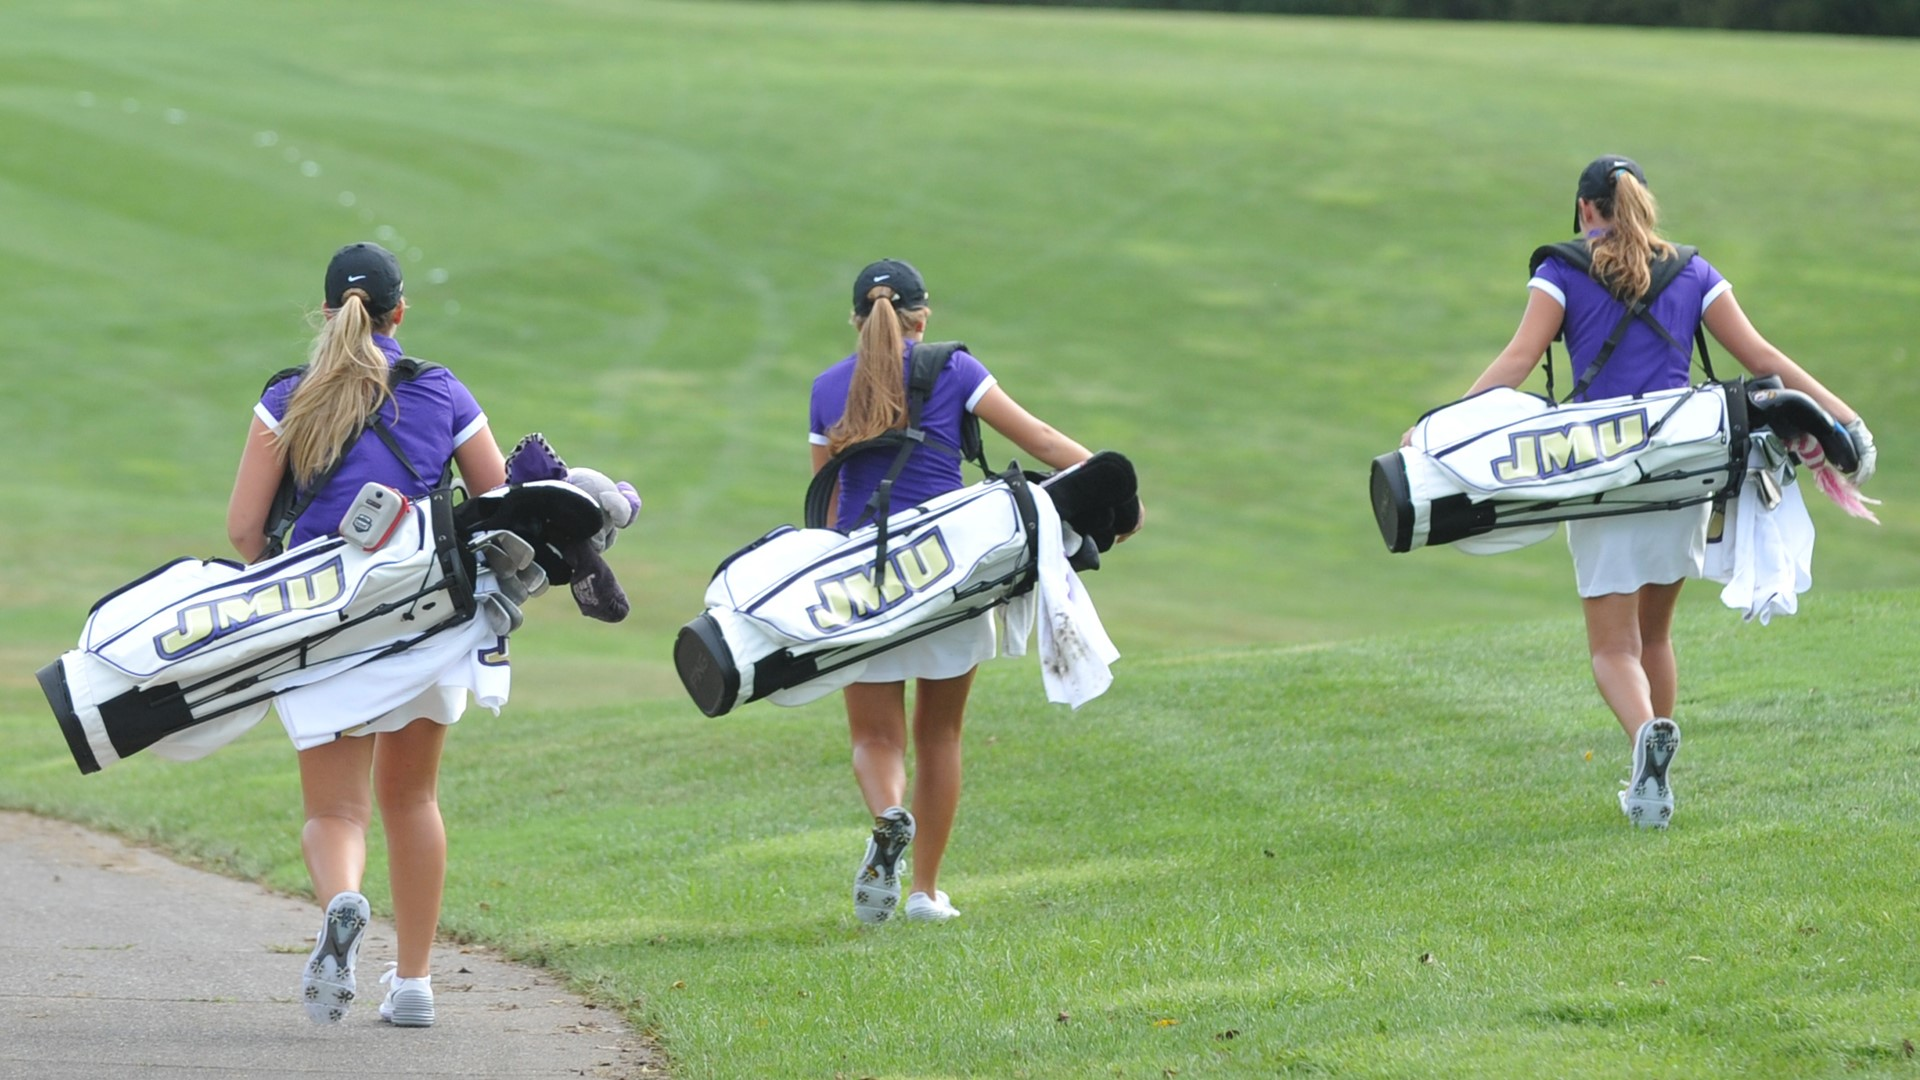 Women's Golf: Women's Golf Announces 2017-18 Schedule)